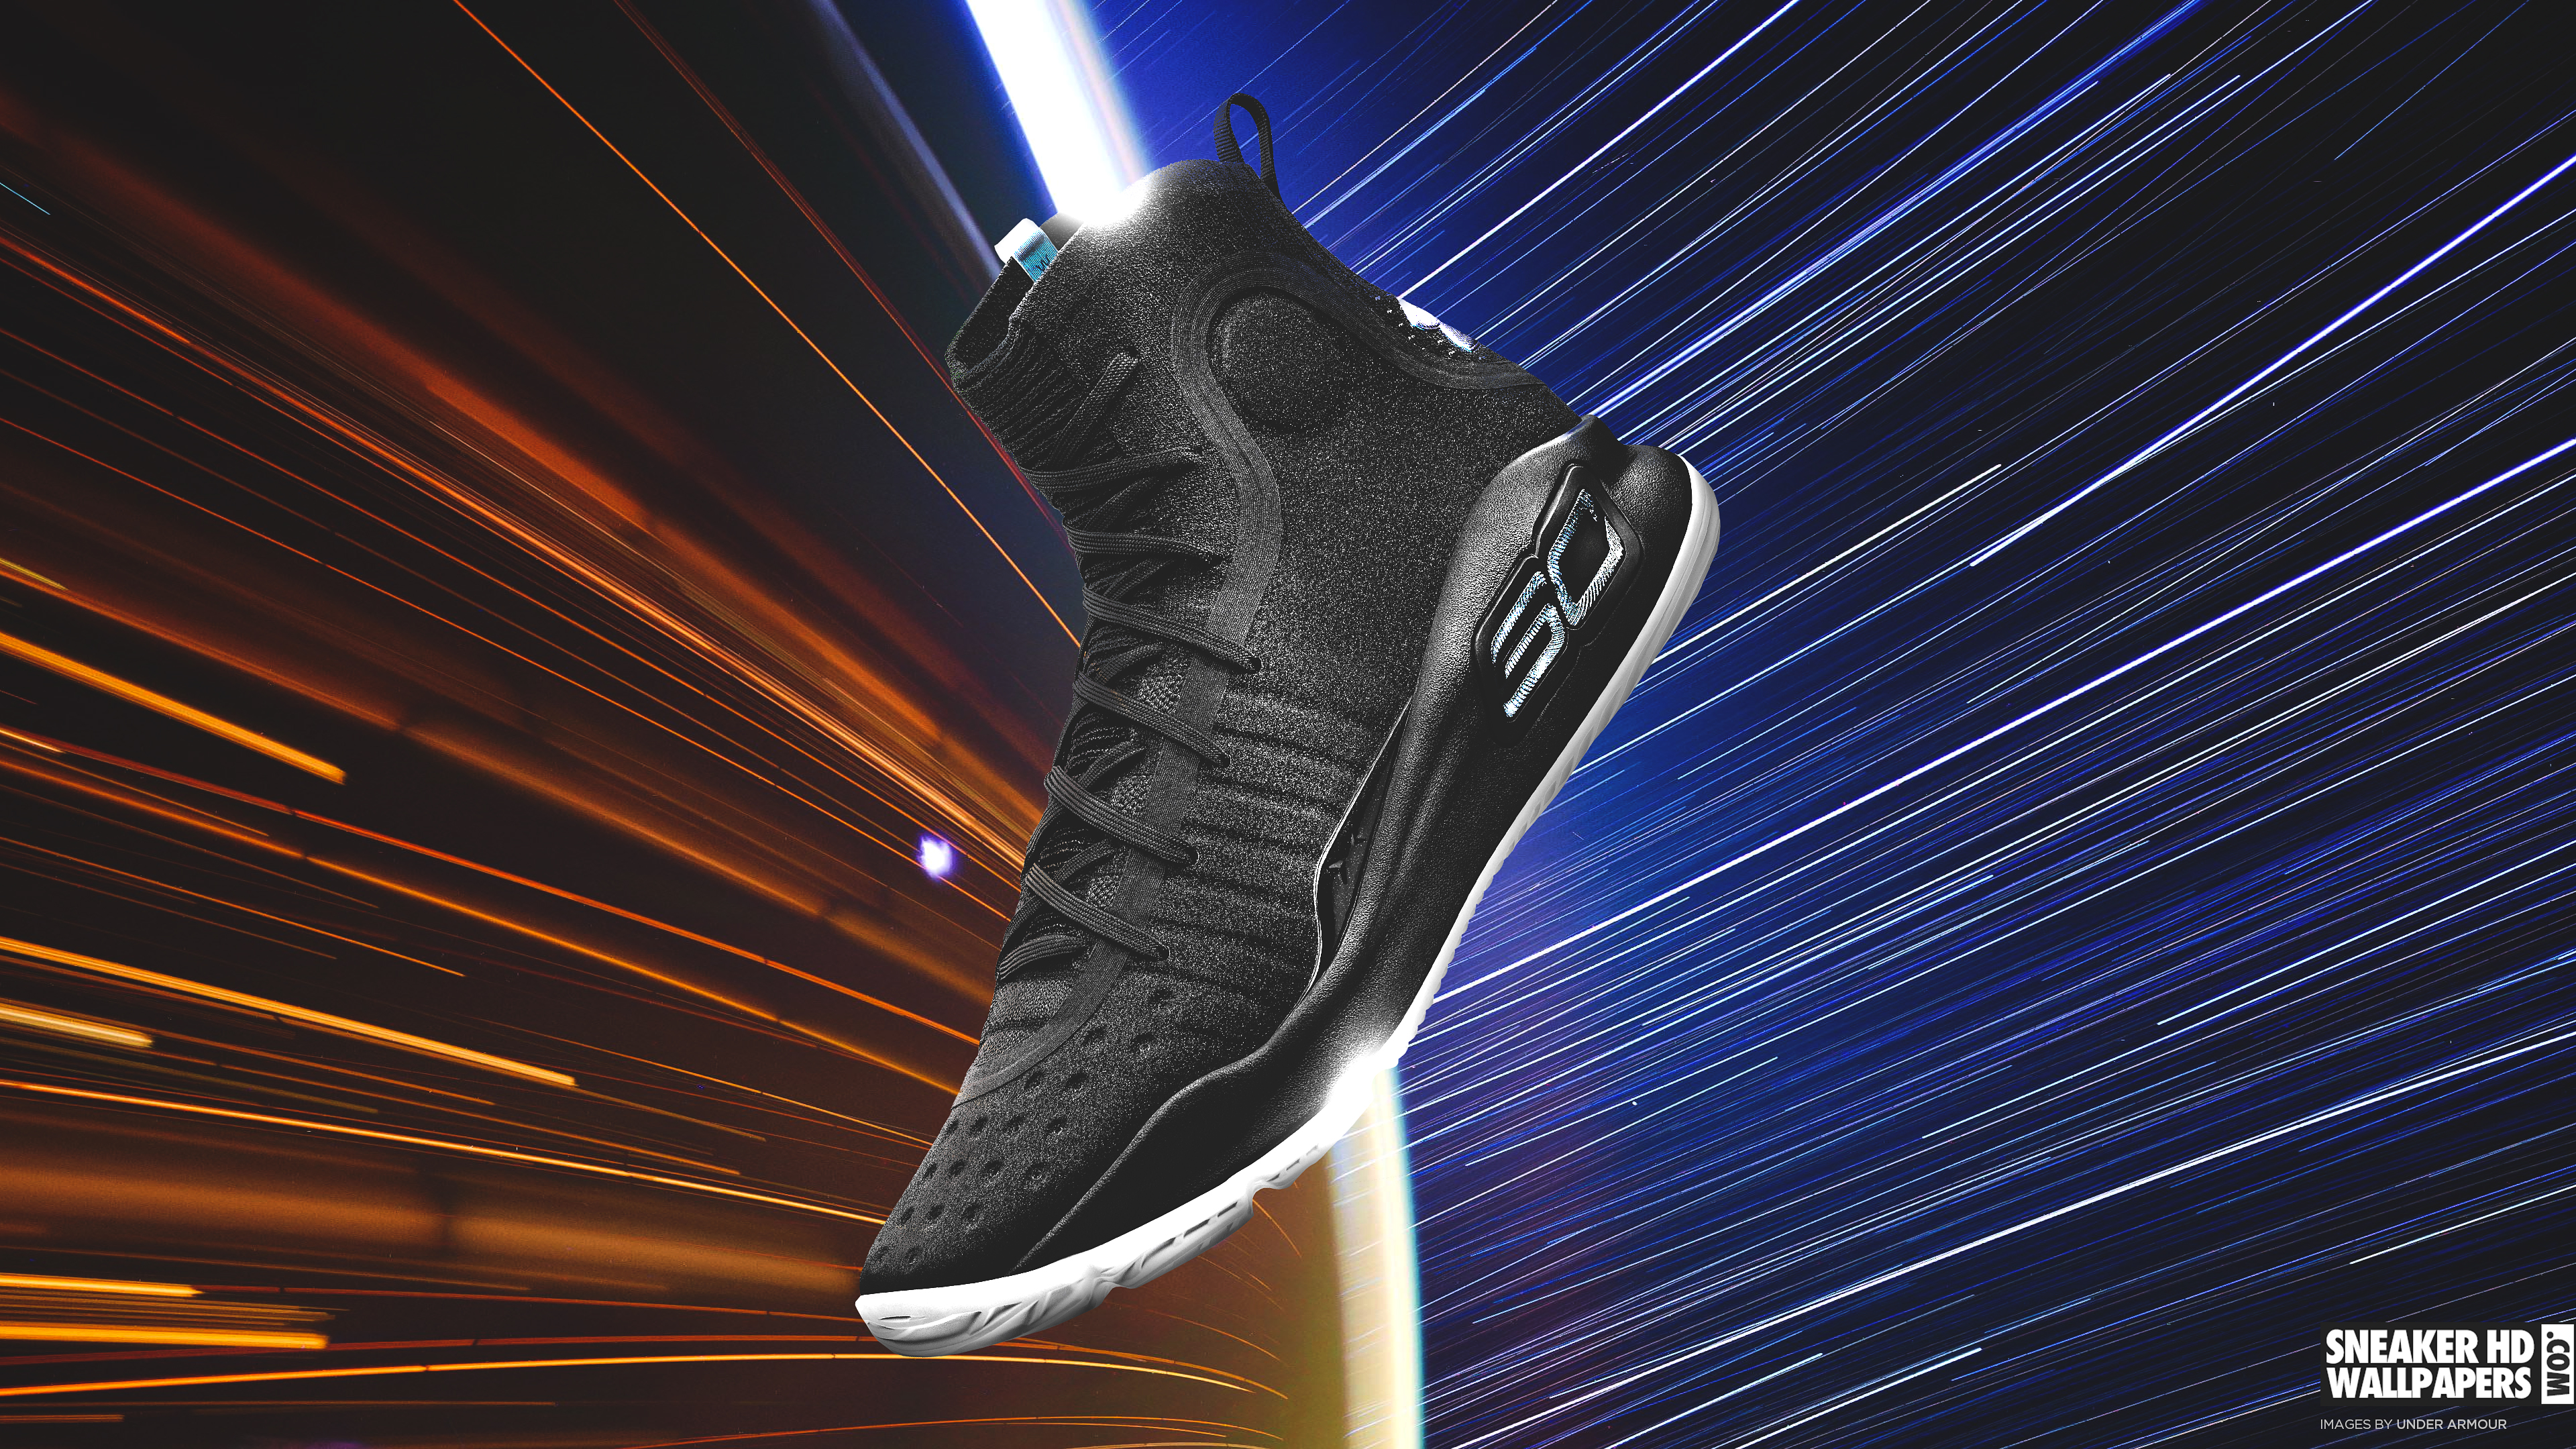 Sneakerhdwallpapers your favorite sneakers in hd and mobile wallpaper voltagebd Images